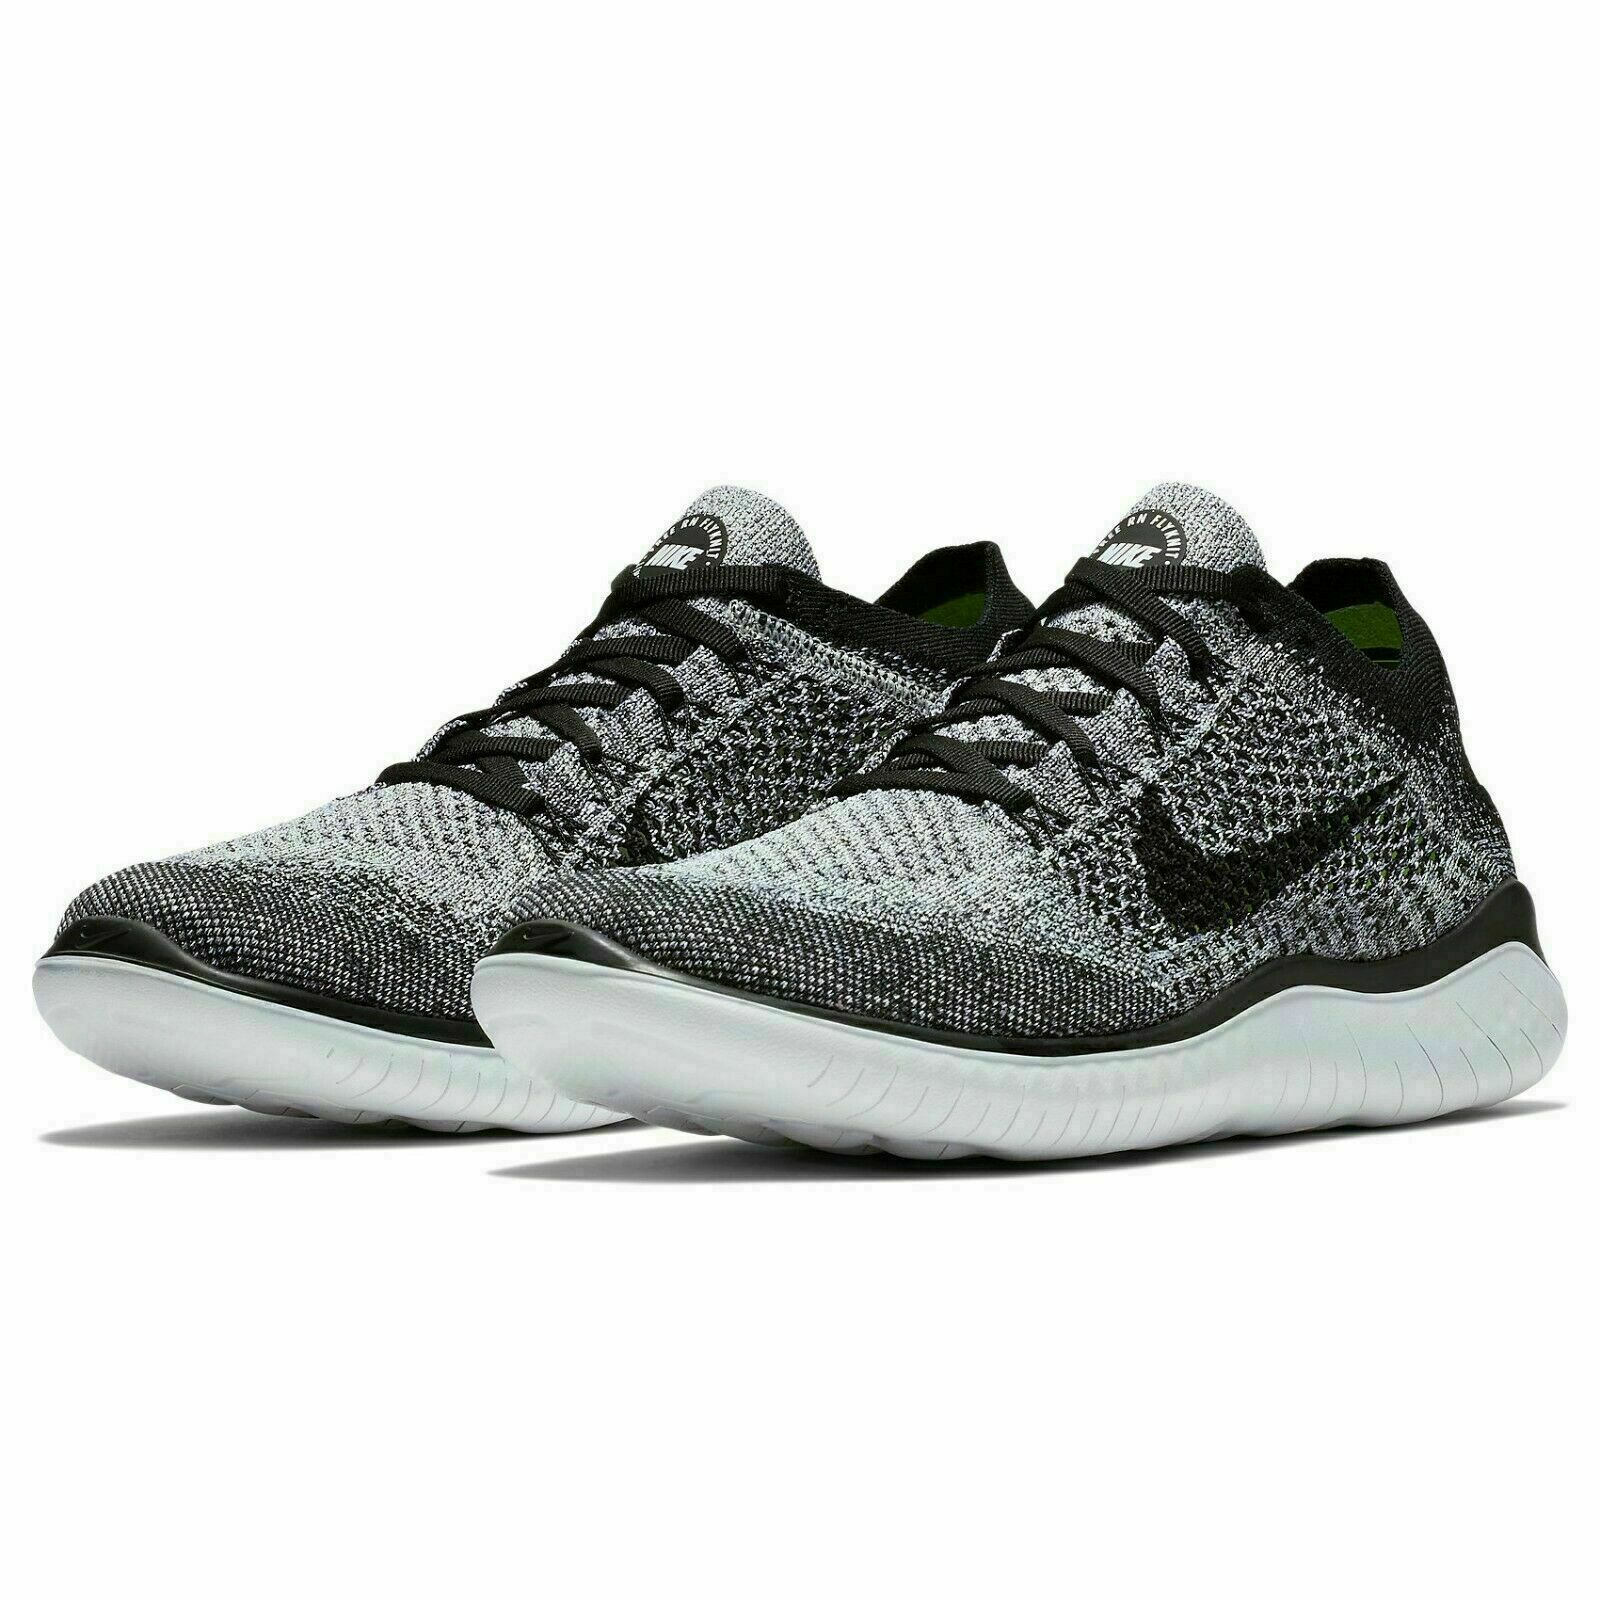 Pranzo scremare difficile  Nike RN Flyknit 2018 Run Cargo Khaki White Men Running Shoes 942838-300 9  for sale online | eBay